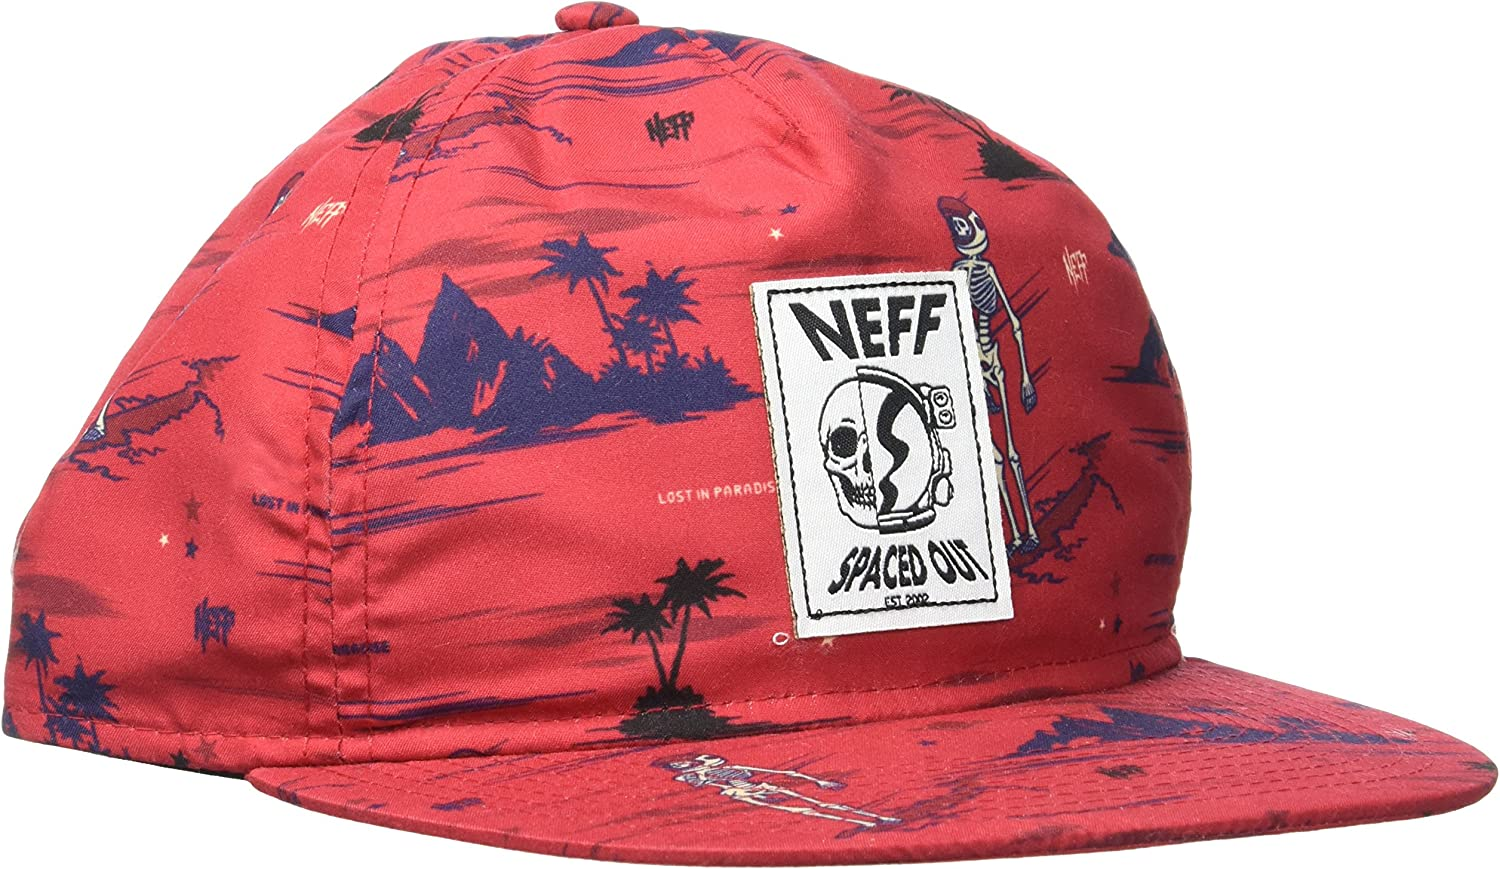 Neff Men's Space Out Snapback Hat